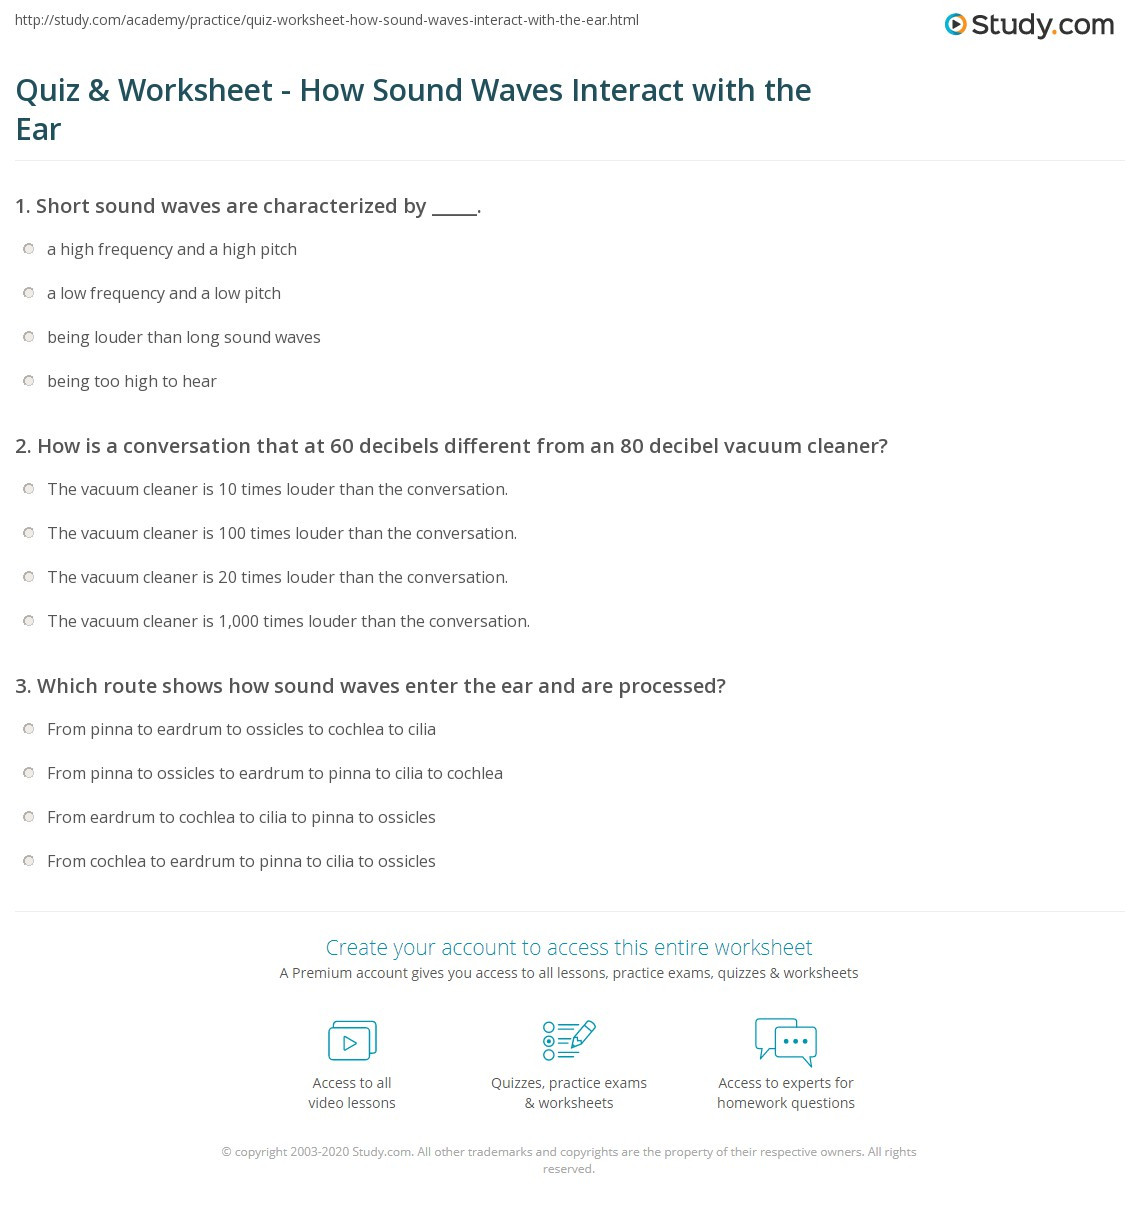 Sound Waves Worksheet Middle School Quiz & Worksheet How sound Waves Interact with the Ear